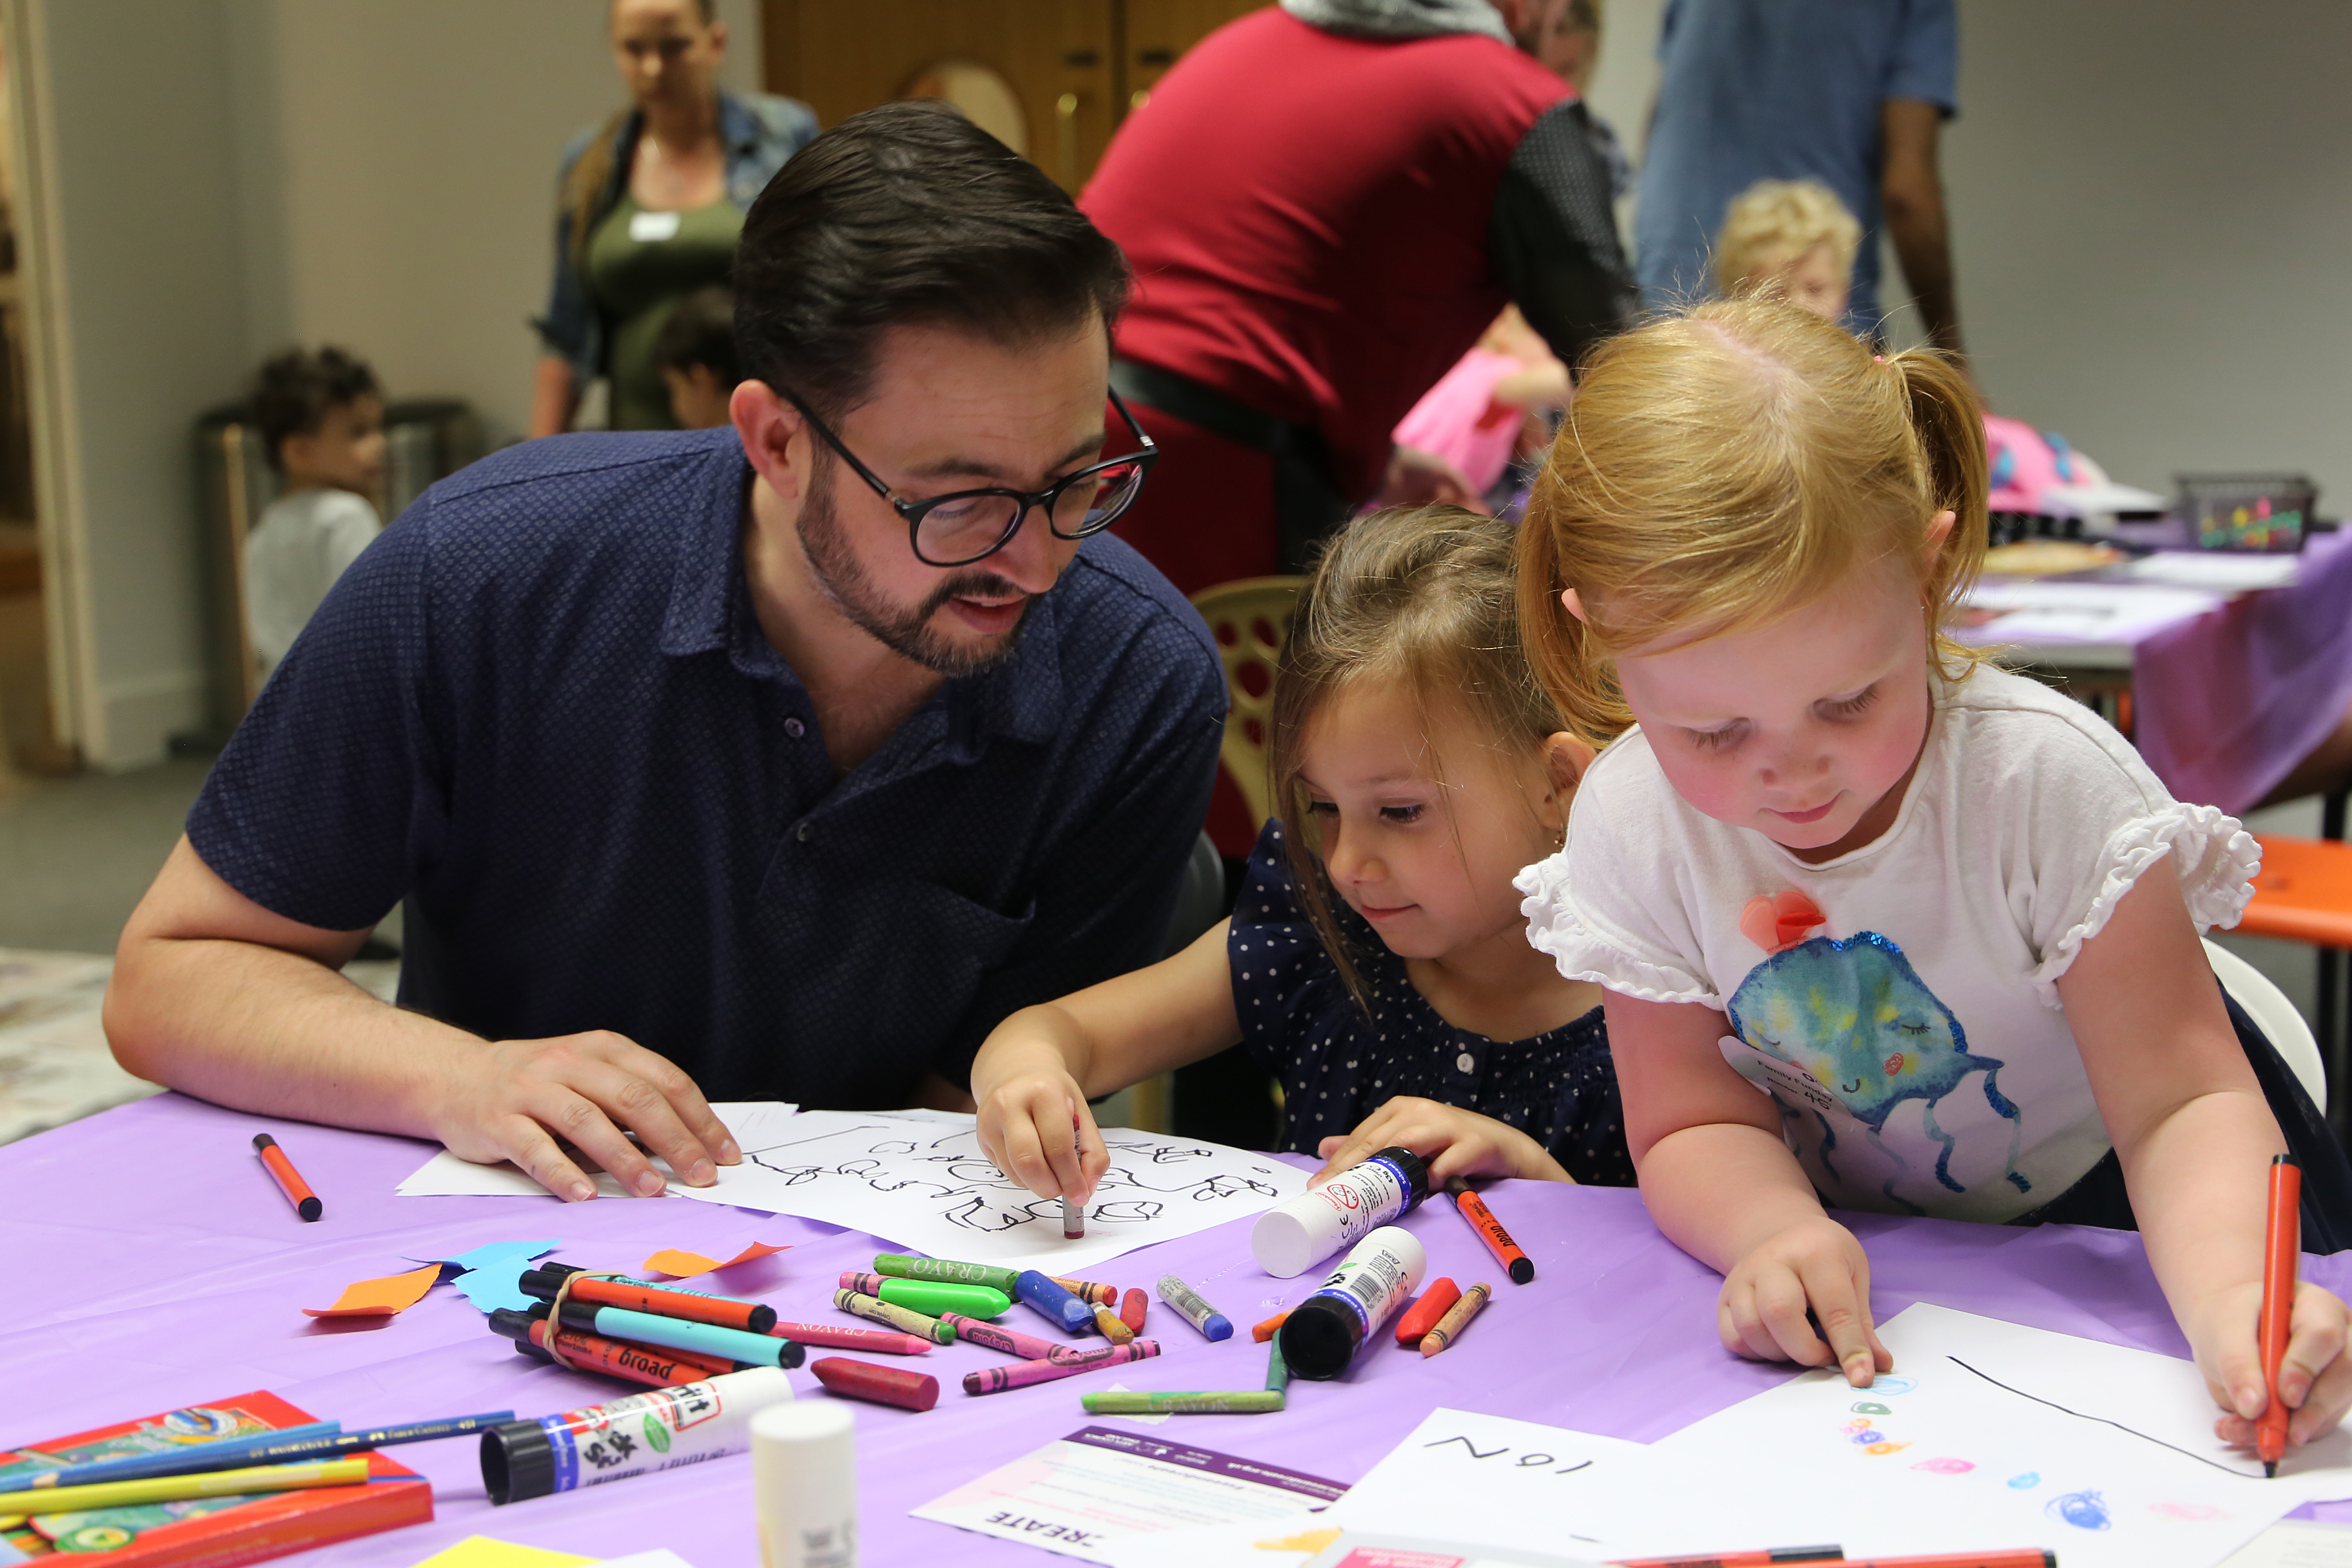 A man does art activities with his two children